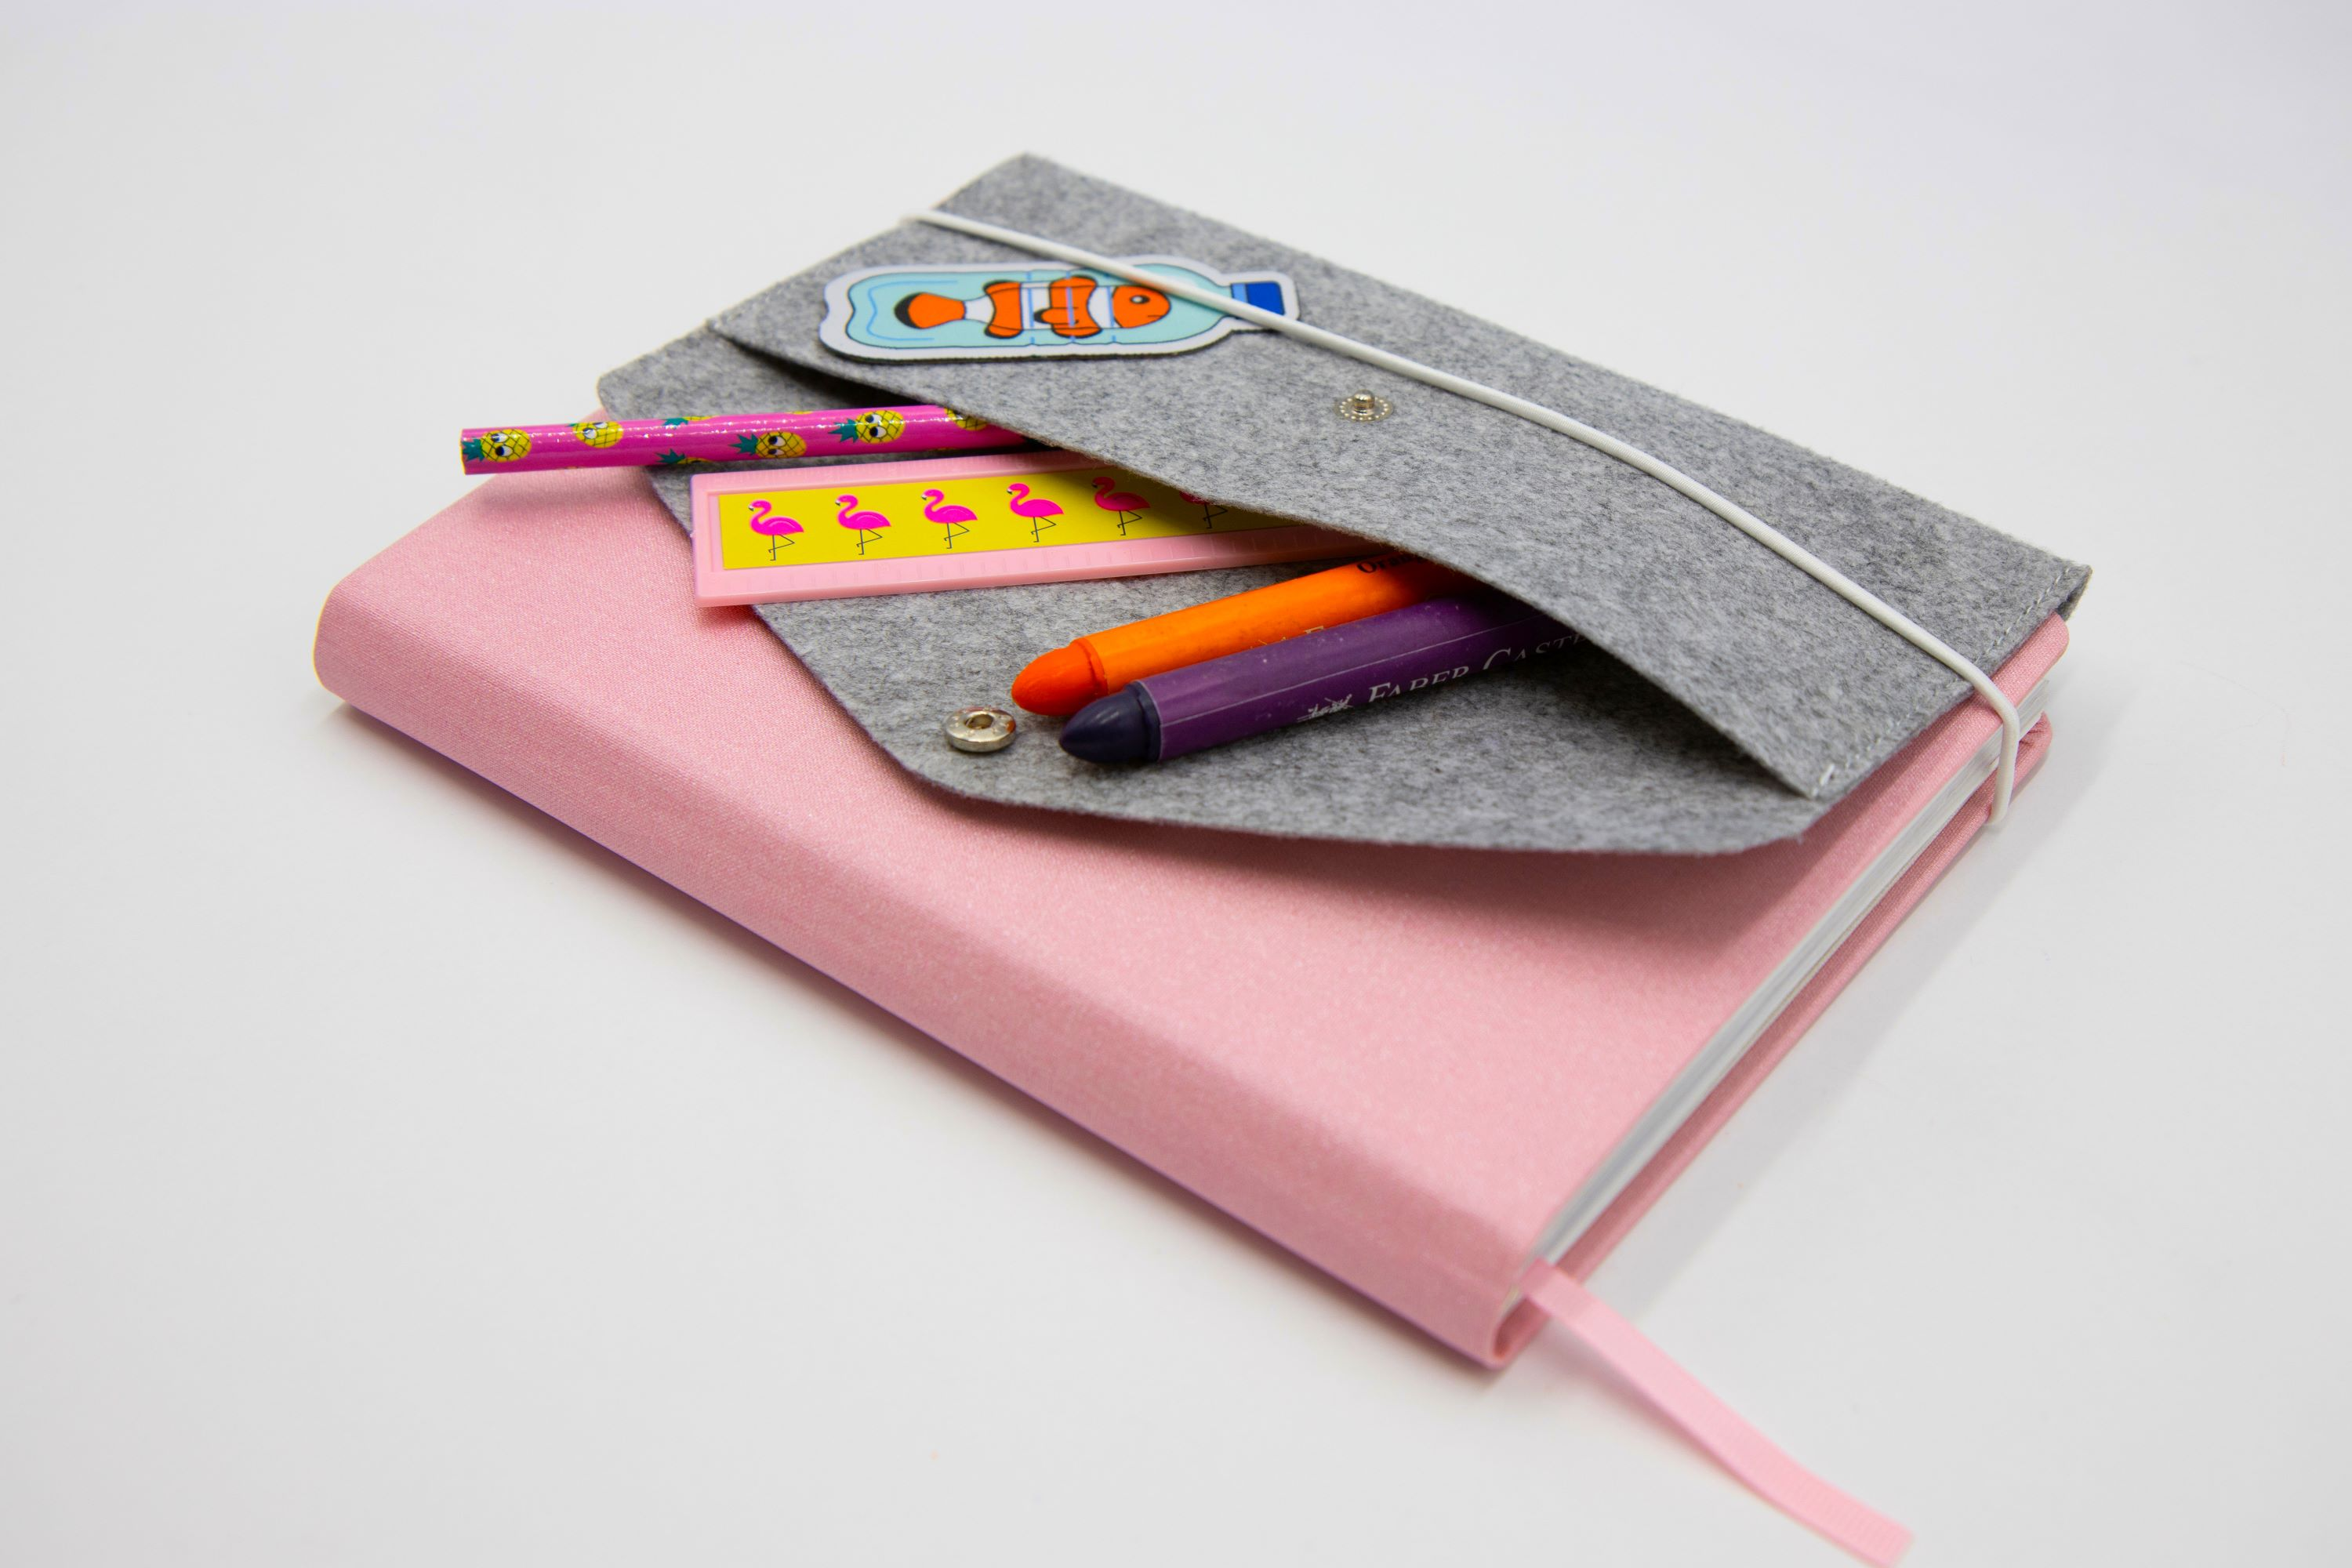 The Sparkle Paper Saver Notebook teaches kids about recycled paper and sustainable living